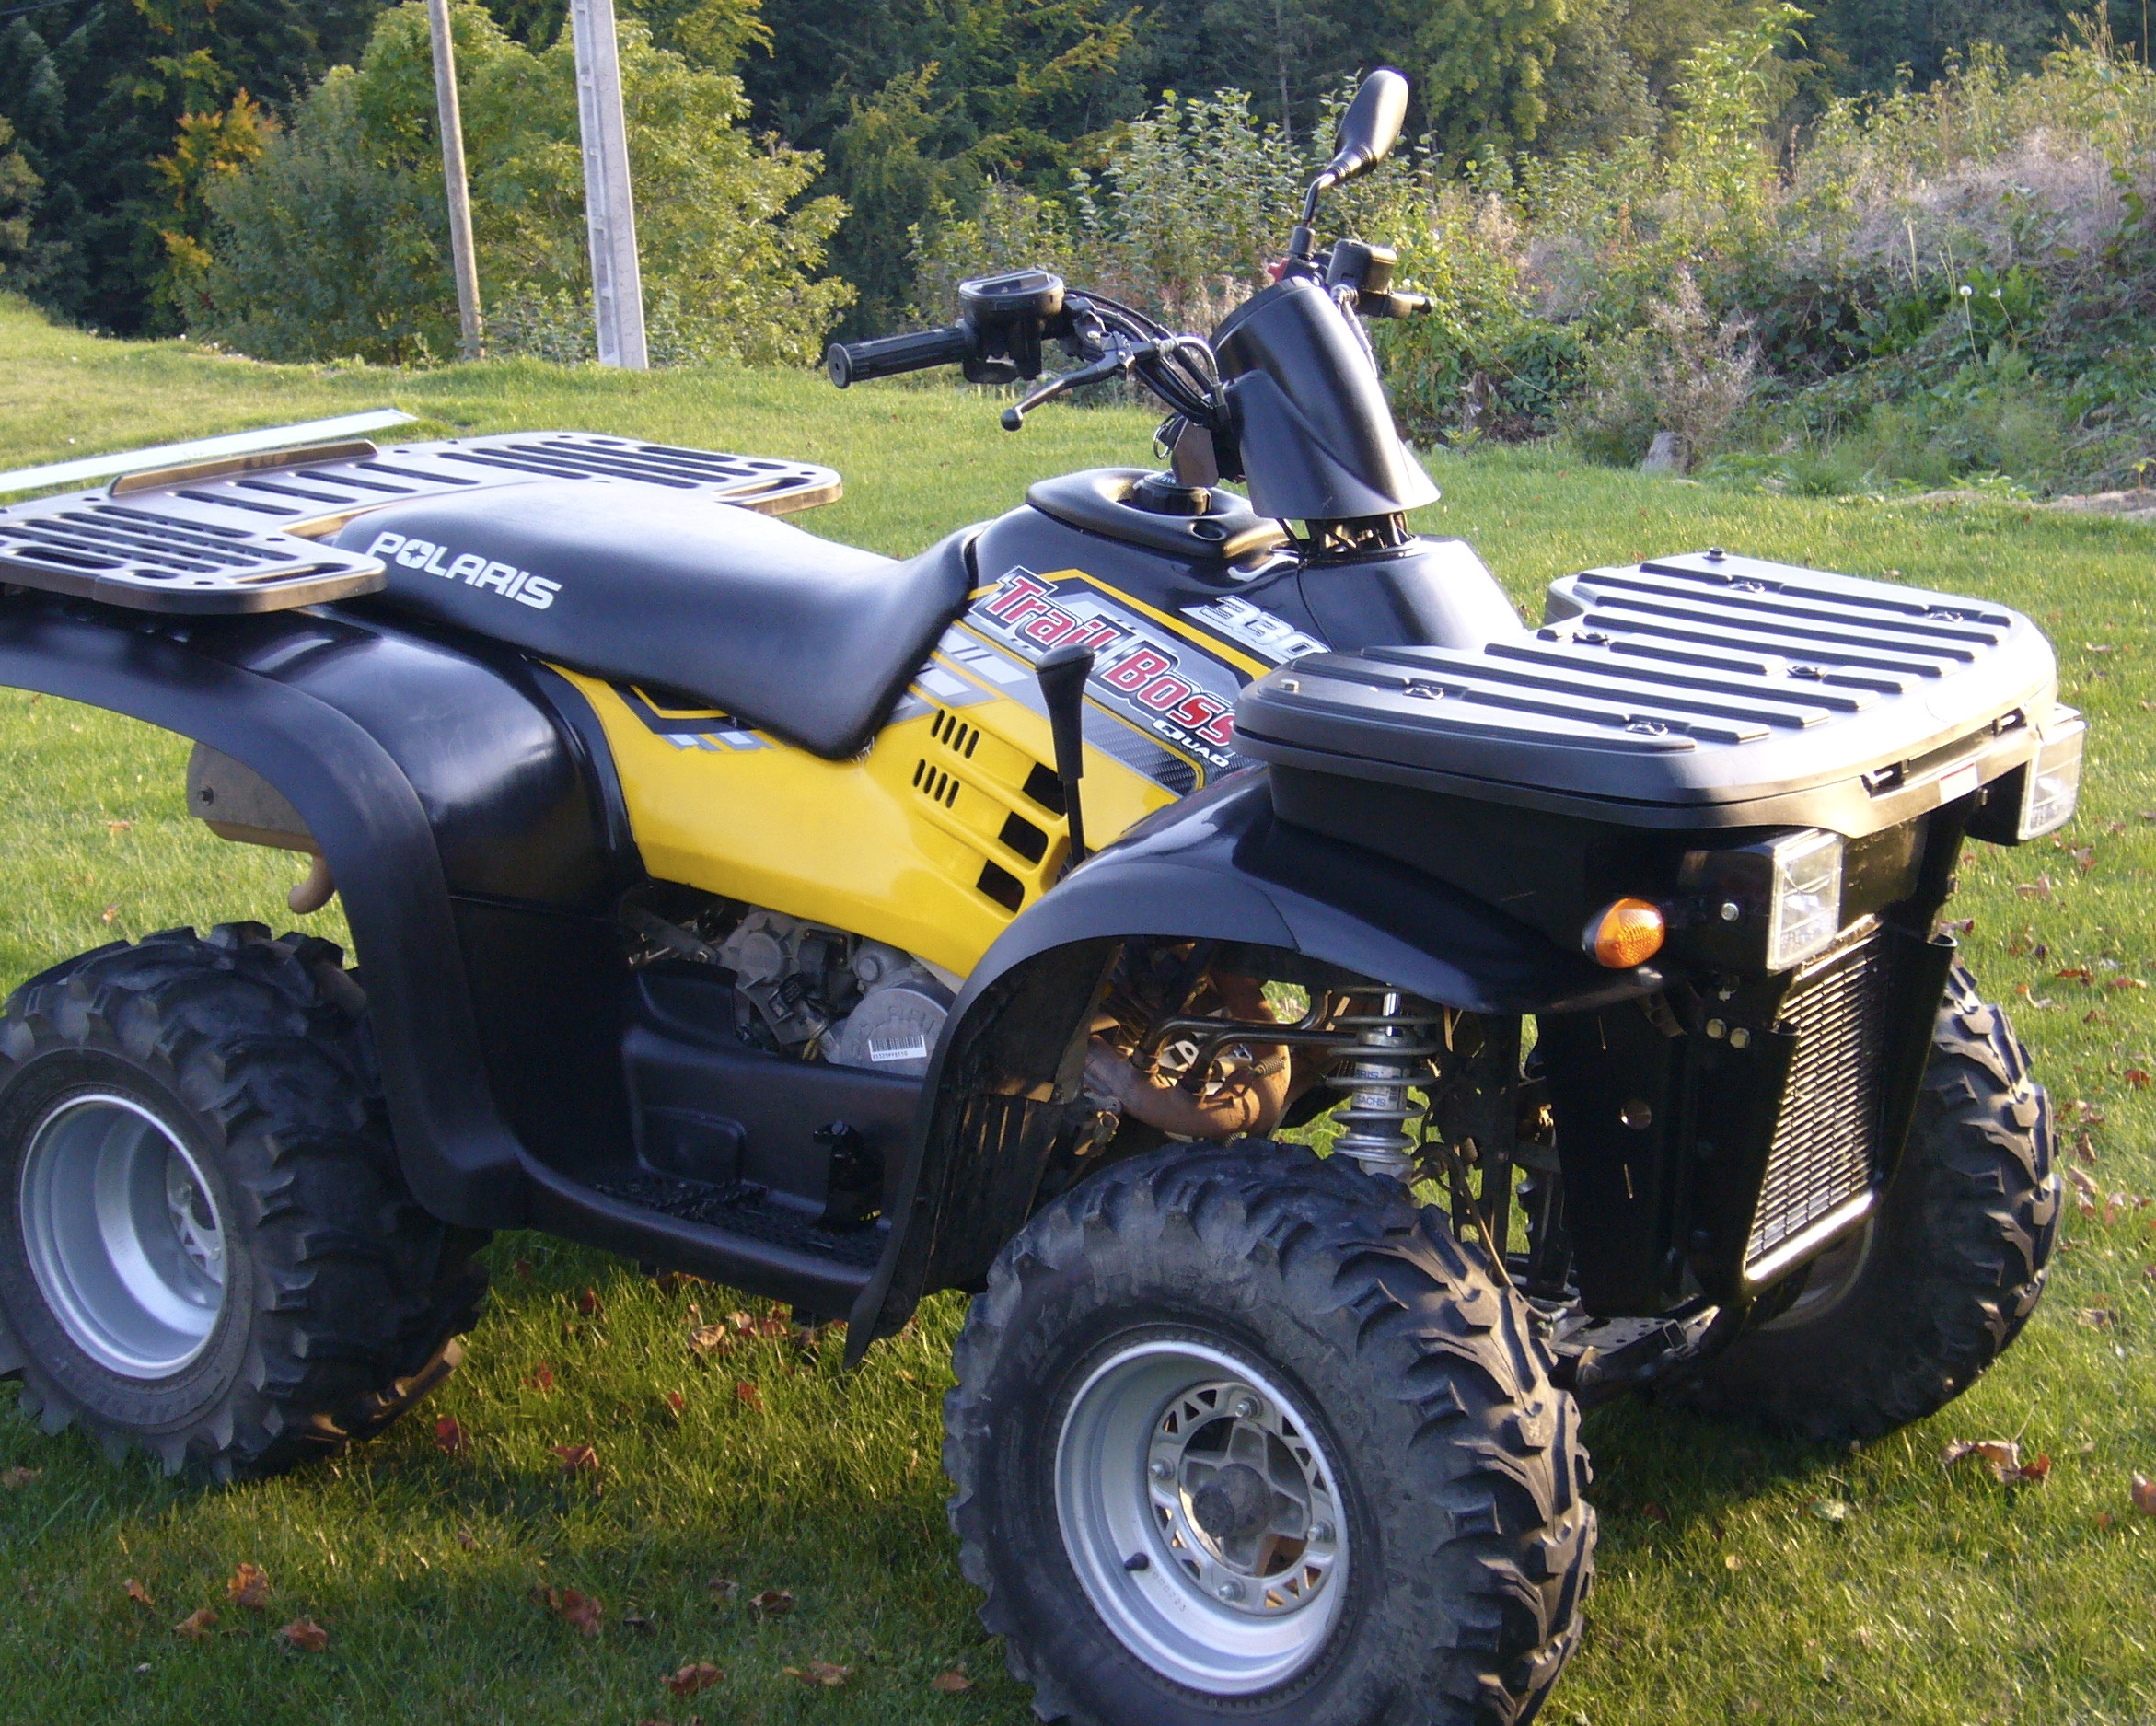 Polaris Trail Boss 330 2006 images #169517